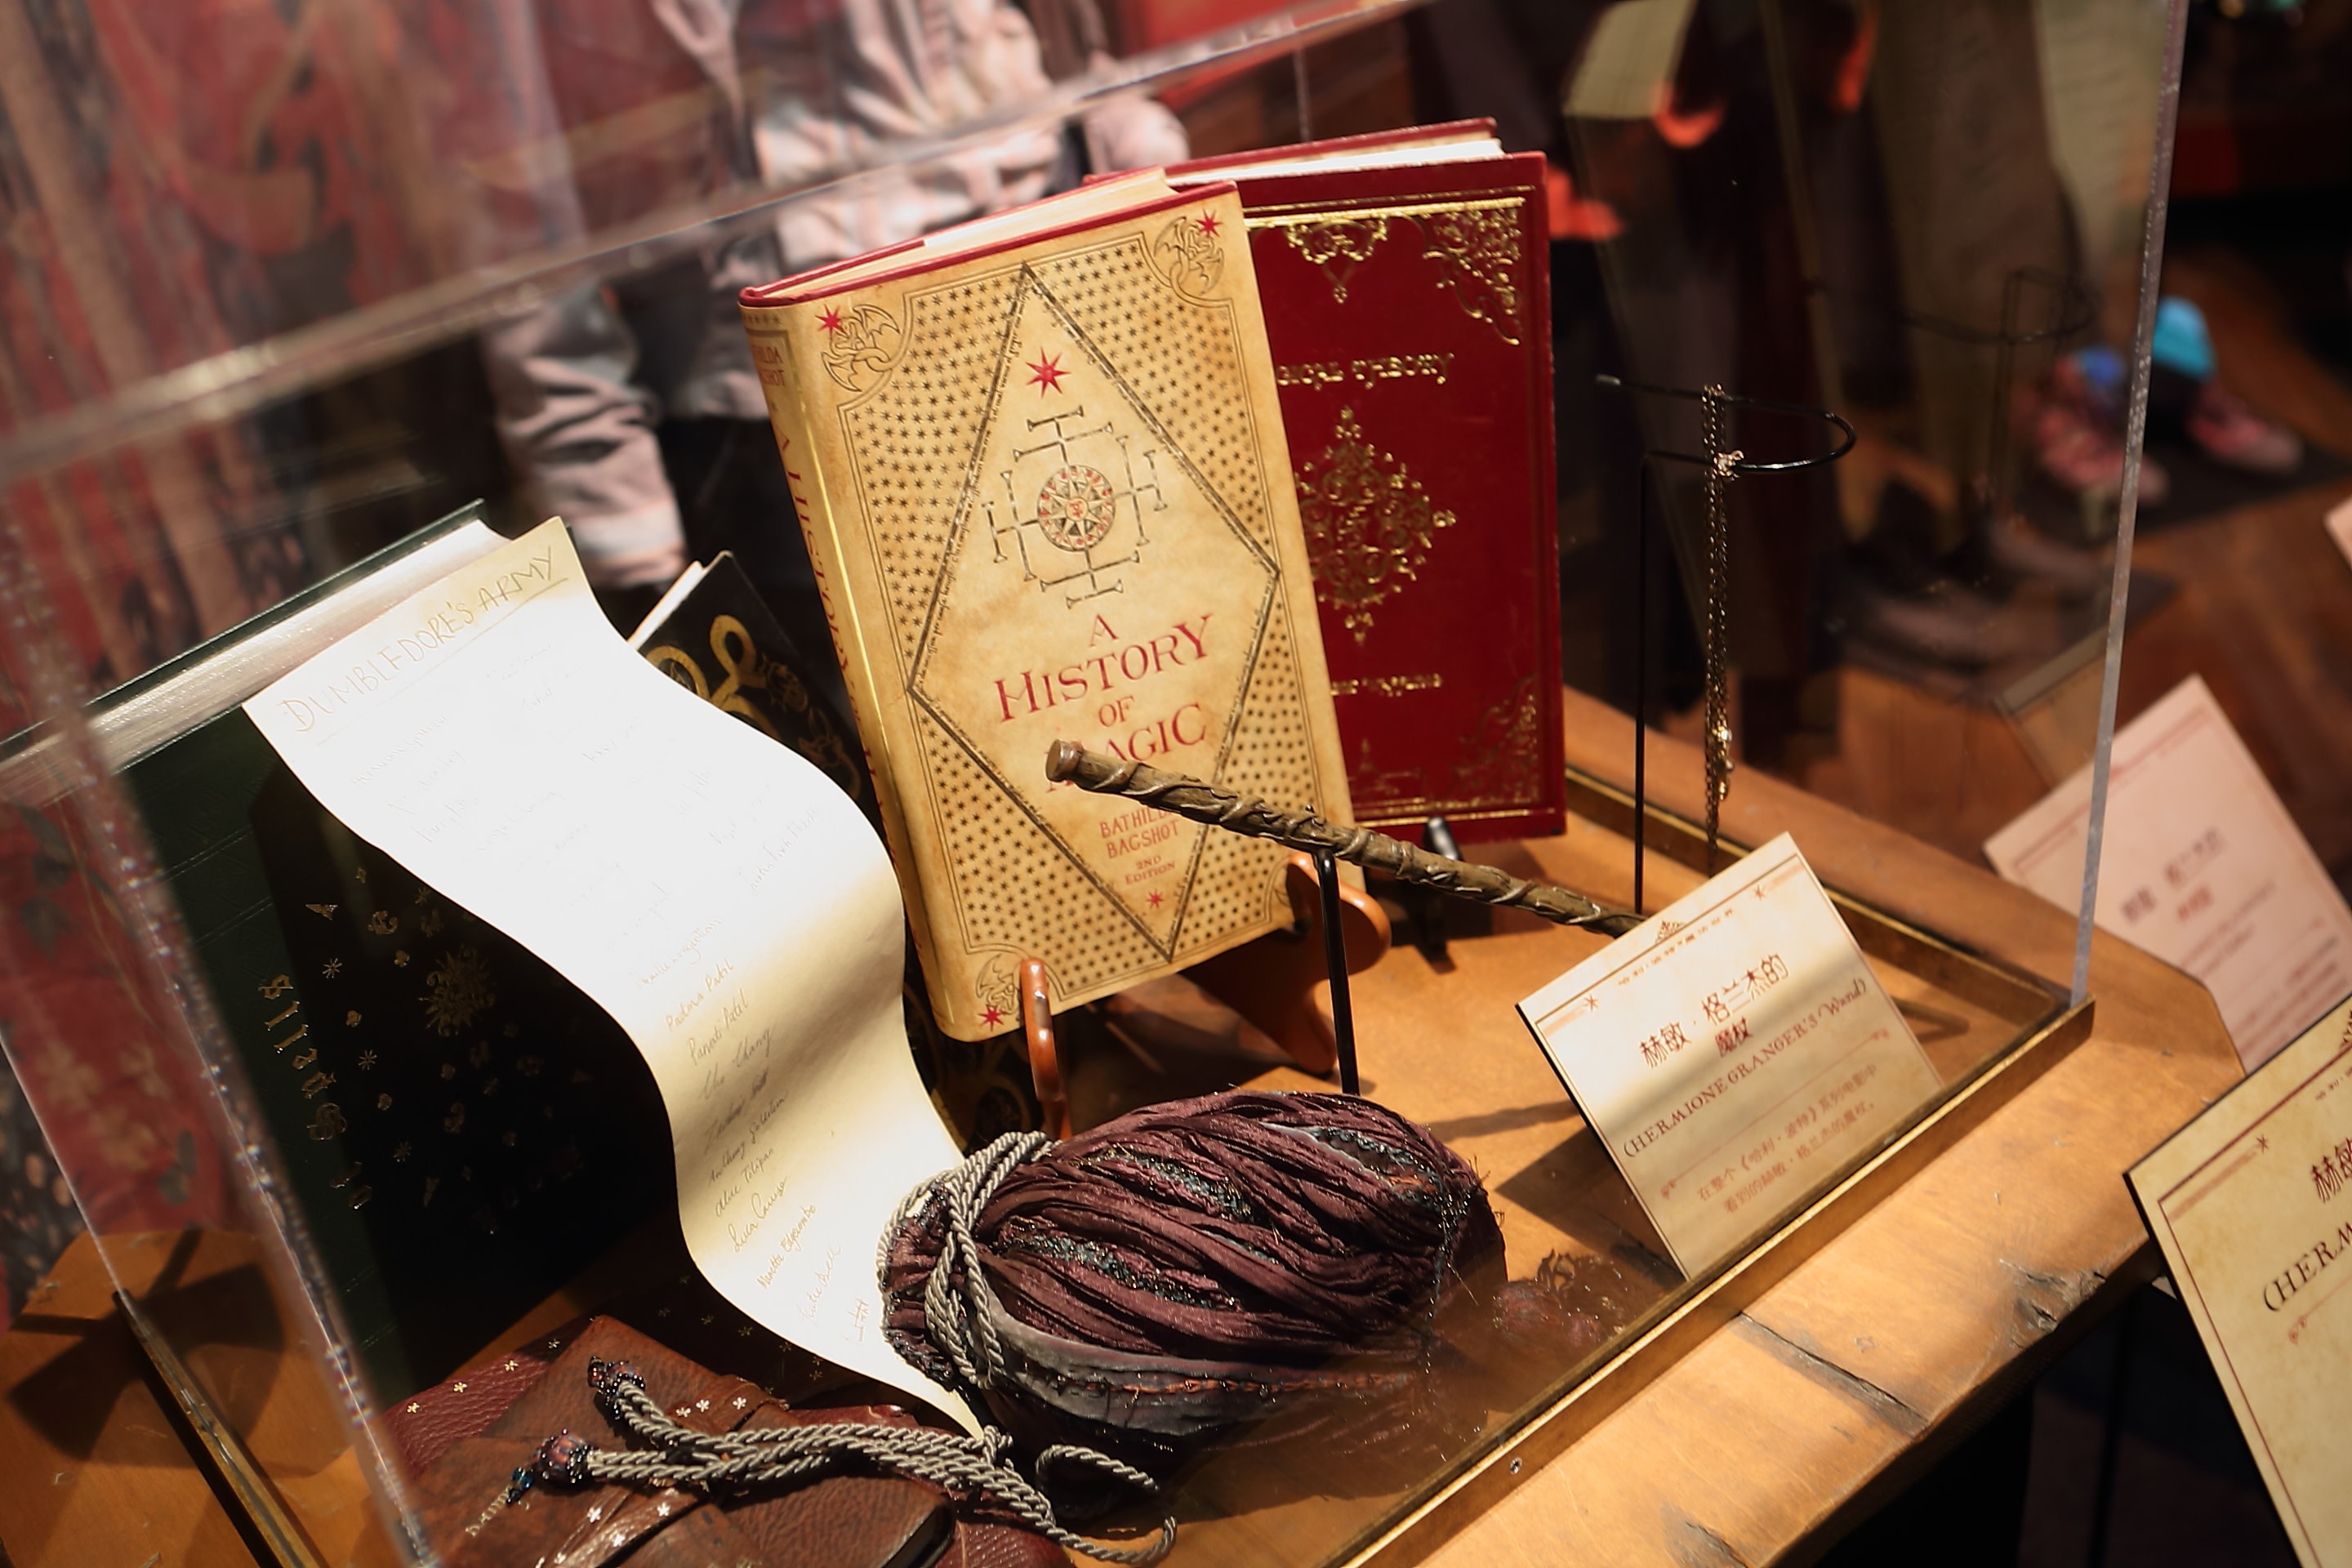 HP exhibition History of Magic book